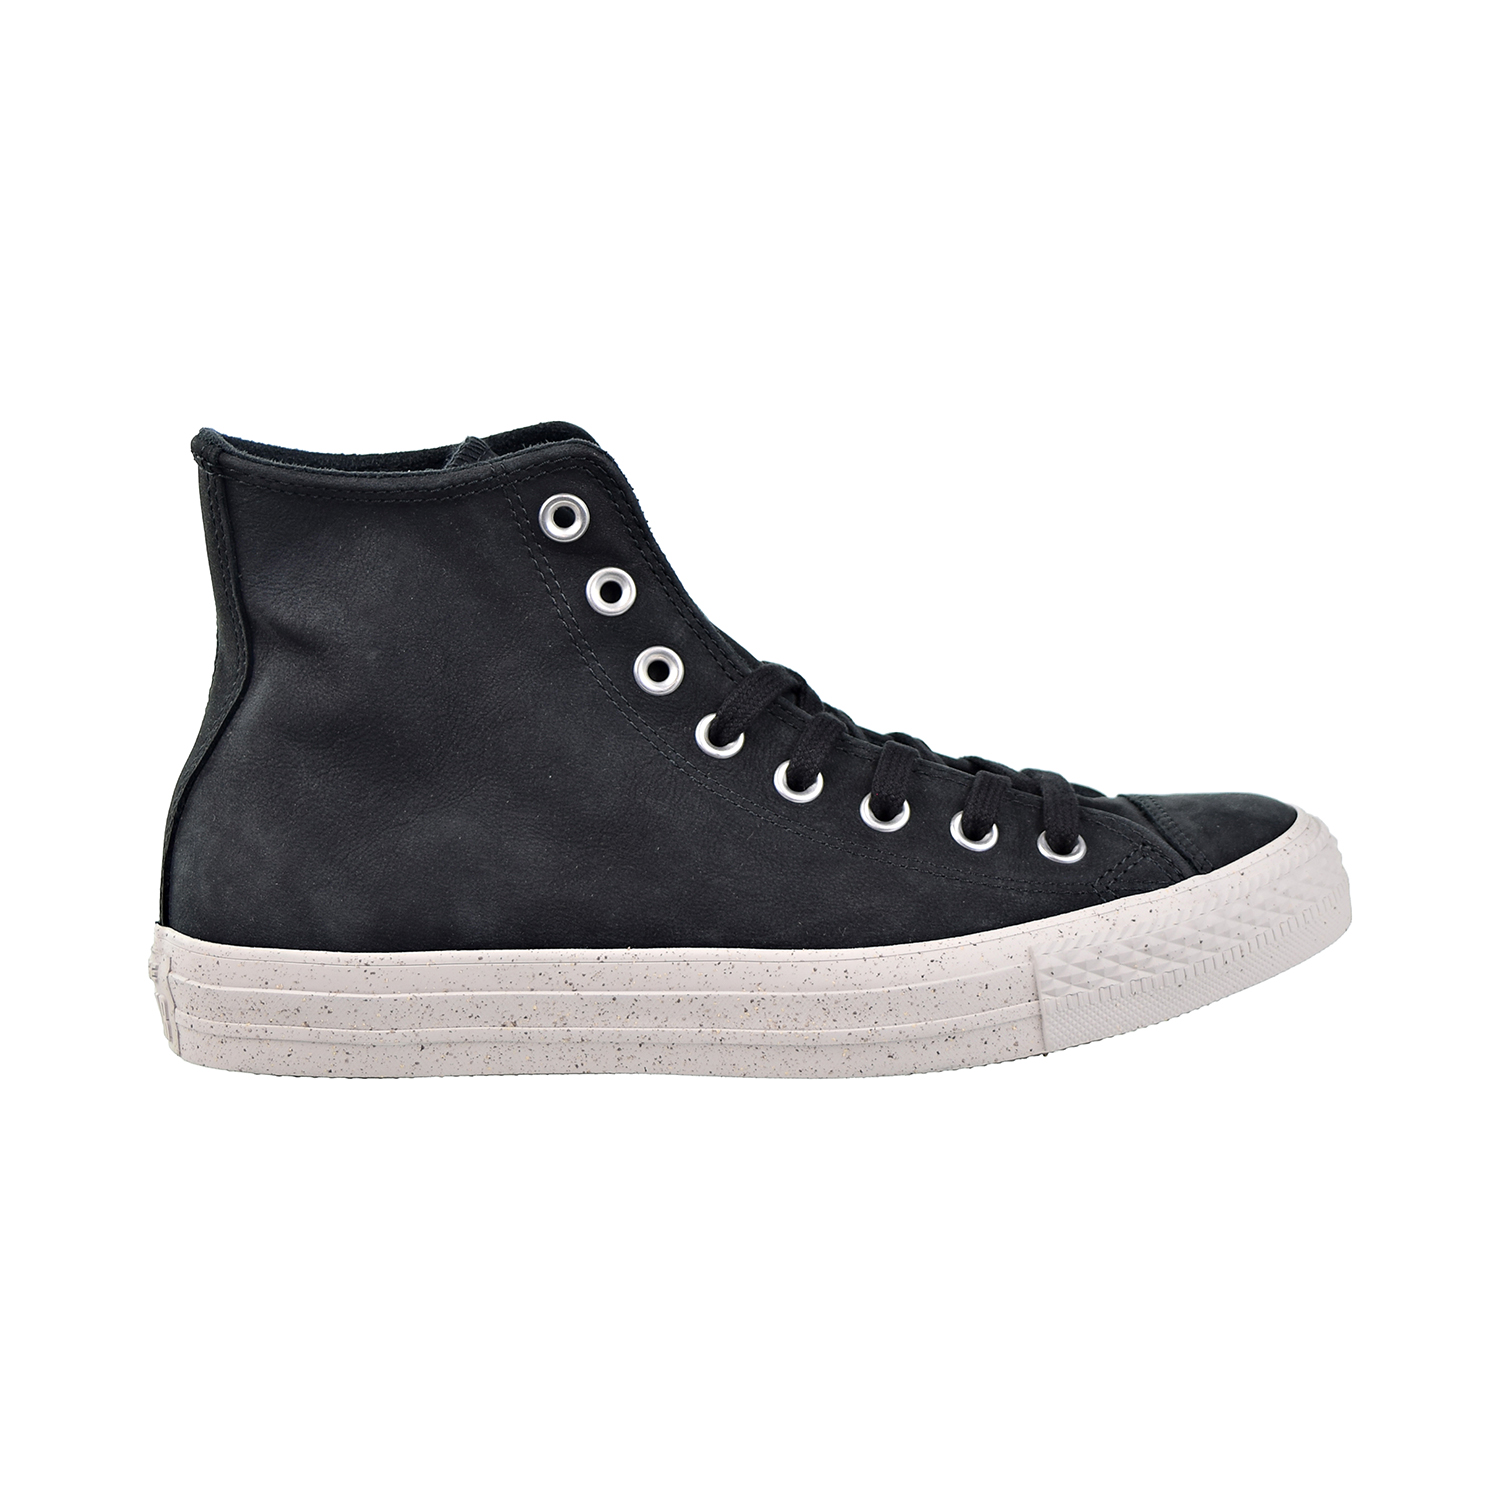 Details about Converse Chuck Taylor All Star Hi Mens Shoes Black Malted Pale Putty 157524C